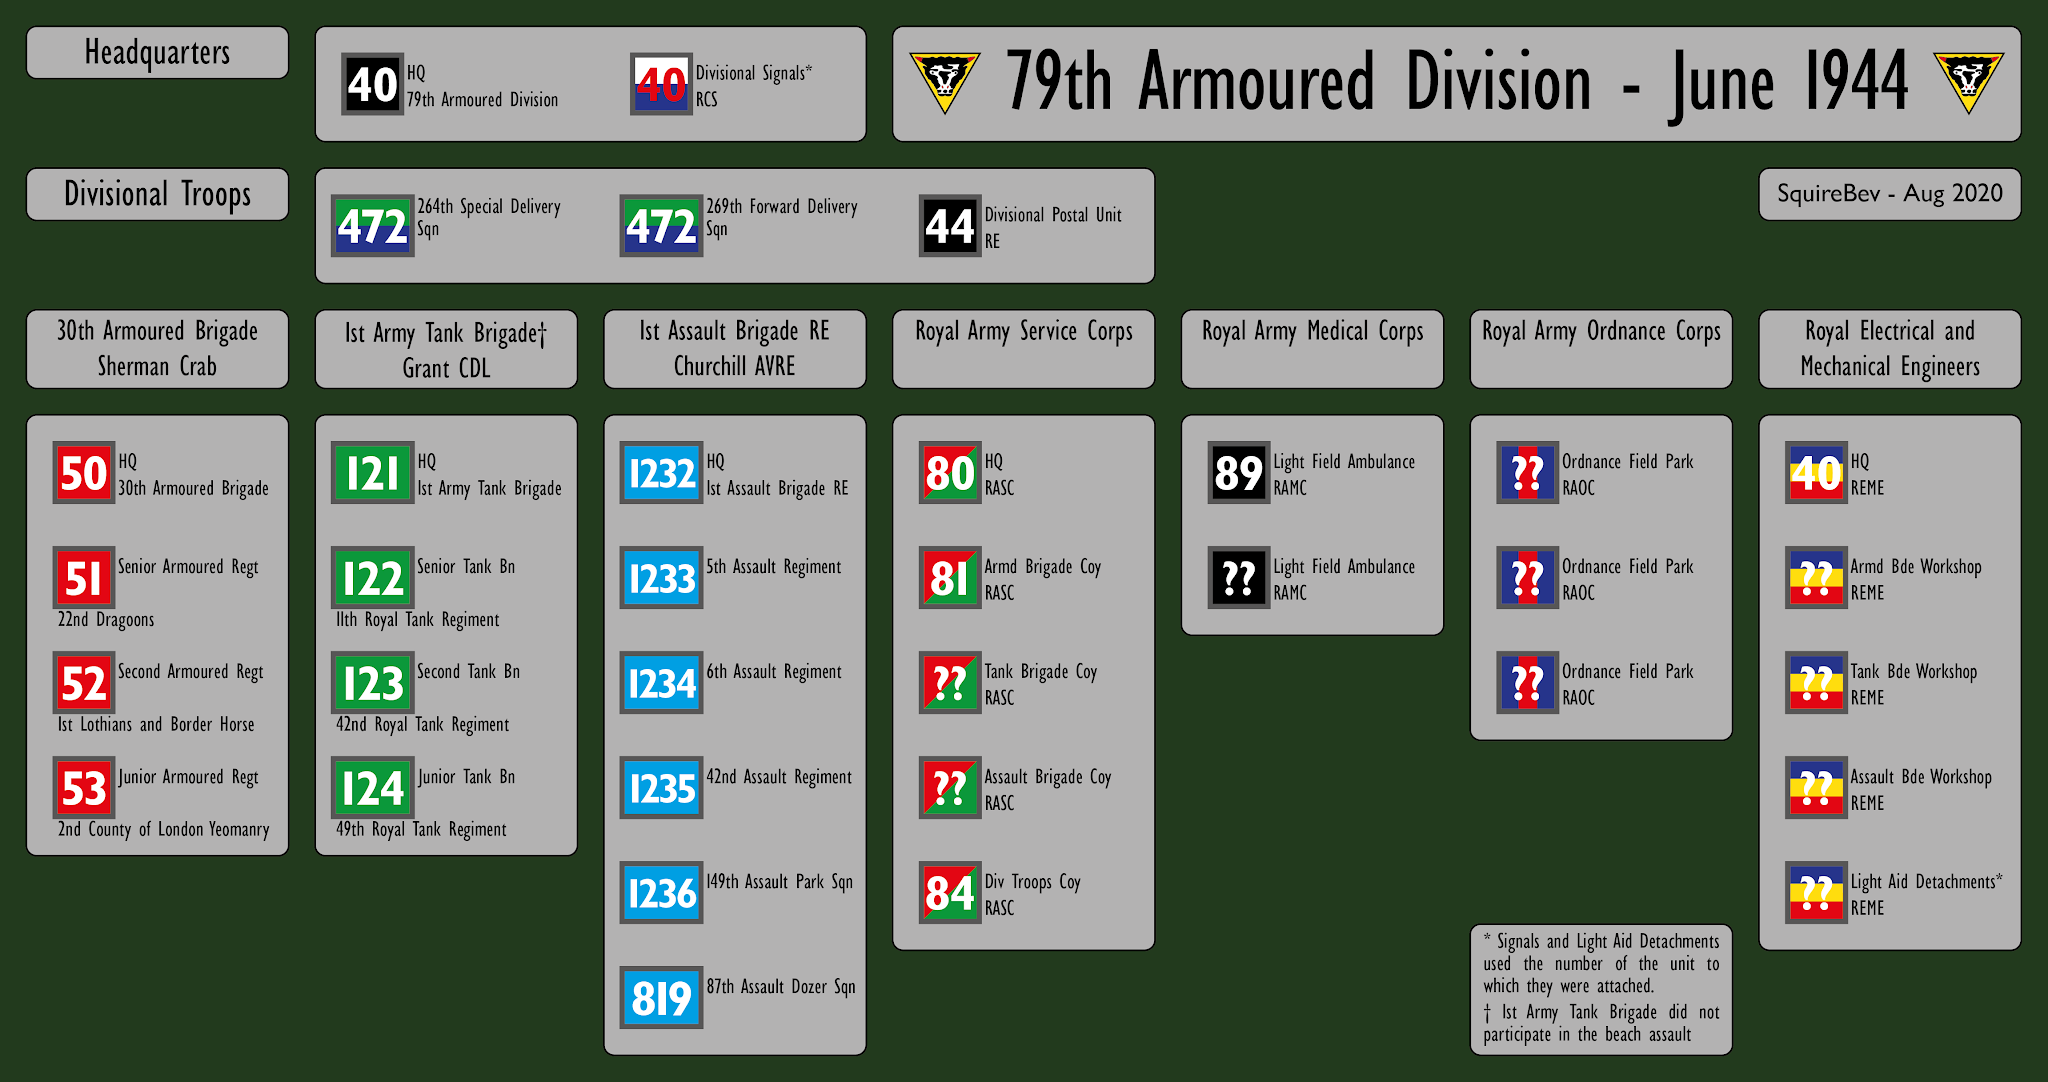 UK+-+Europe+-+79th+Armoured+Division+-+J